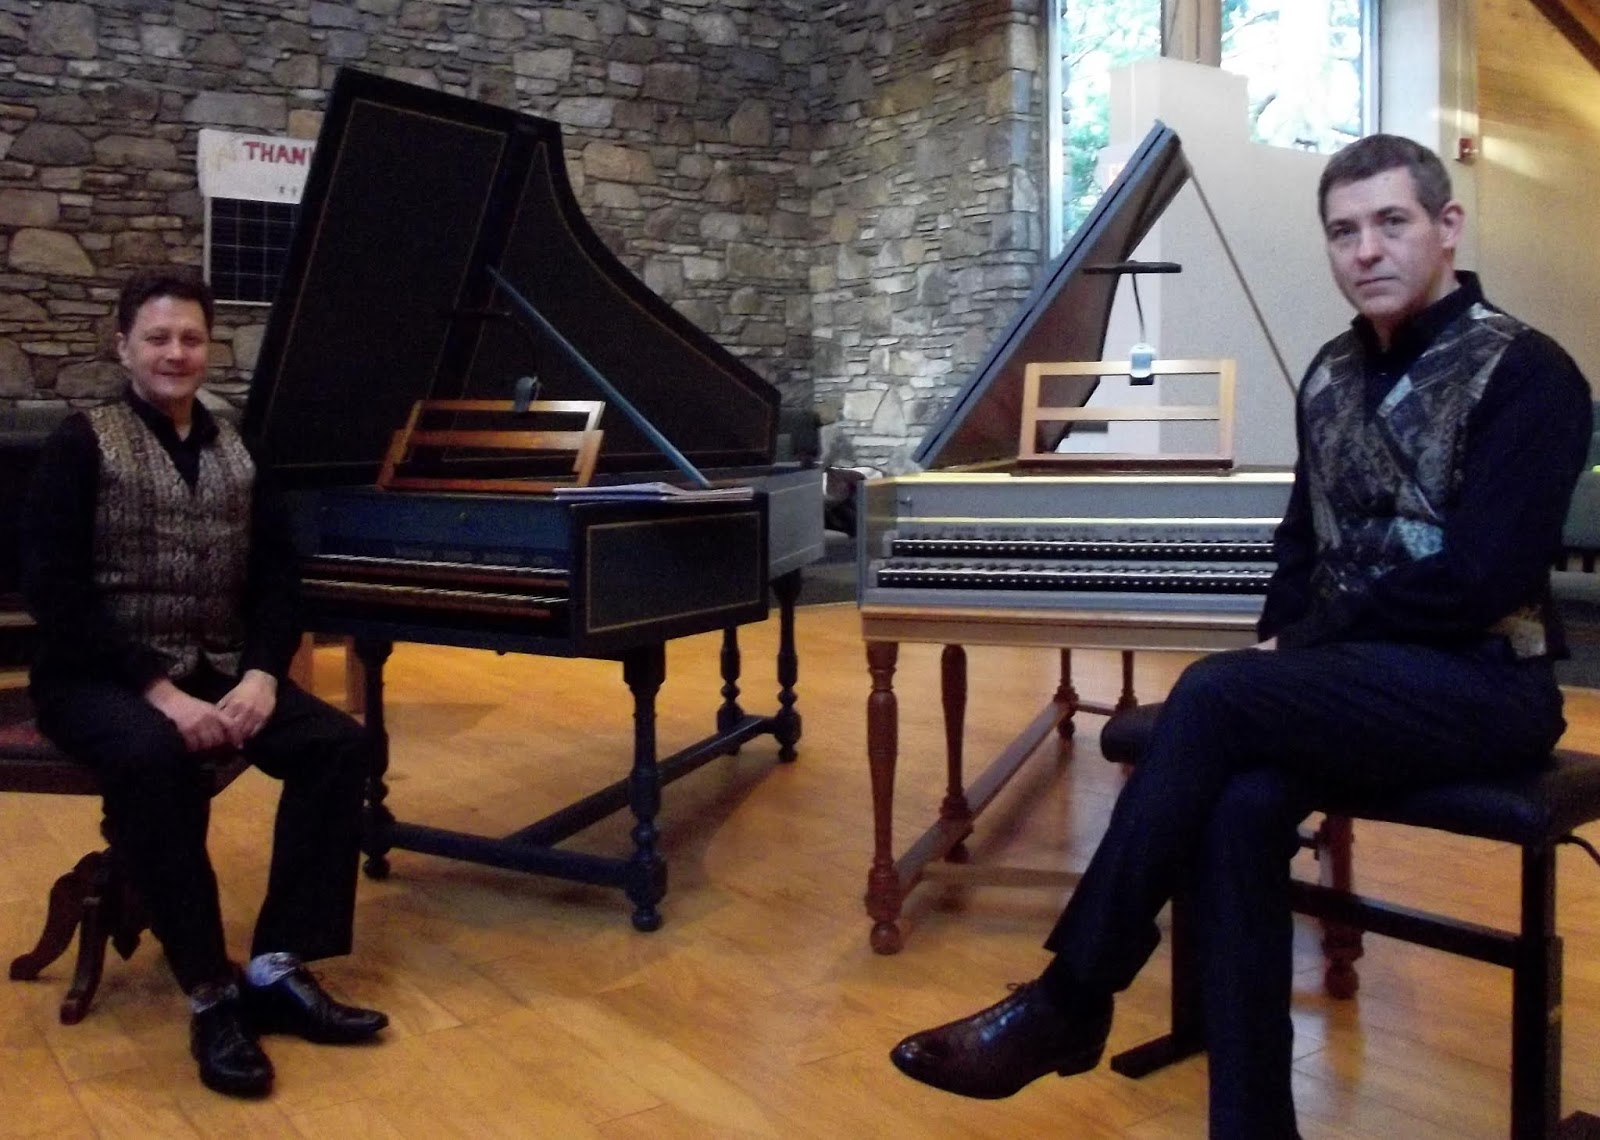 IN PERFORMANCE: internationally-acclaimed harpsichordists JORY VINIKOUR (left) and PHILIPPE LEROY (right), who brought a recital of music for two harpsichords to Asheville, North Carolina, on 20 October 2018 [Photo by the author, © by Joseph Newsome / Voix des Arts; used with the artists' permission]